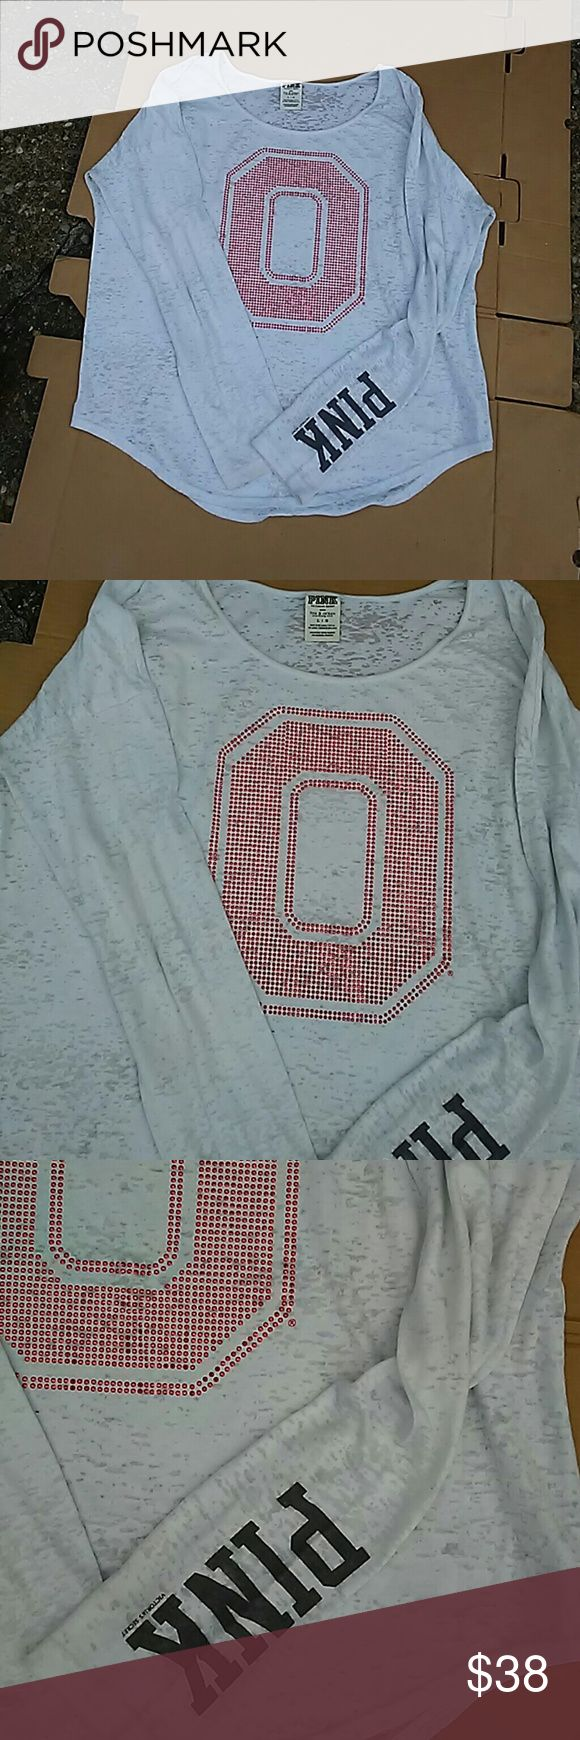 VS PINK OSU bling shirt cute! Awesome  shirt with O in bling on the front! Has PINK on the sleeve! Thin sheer material, will need a tank top underneath... PINK Victoria's Secret Tops